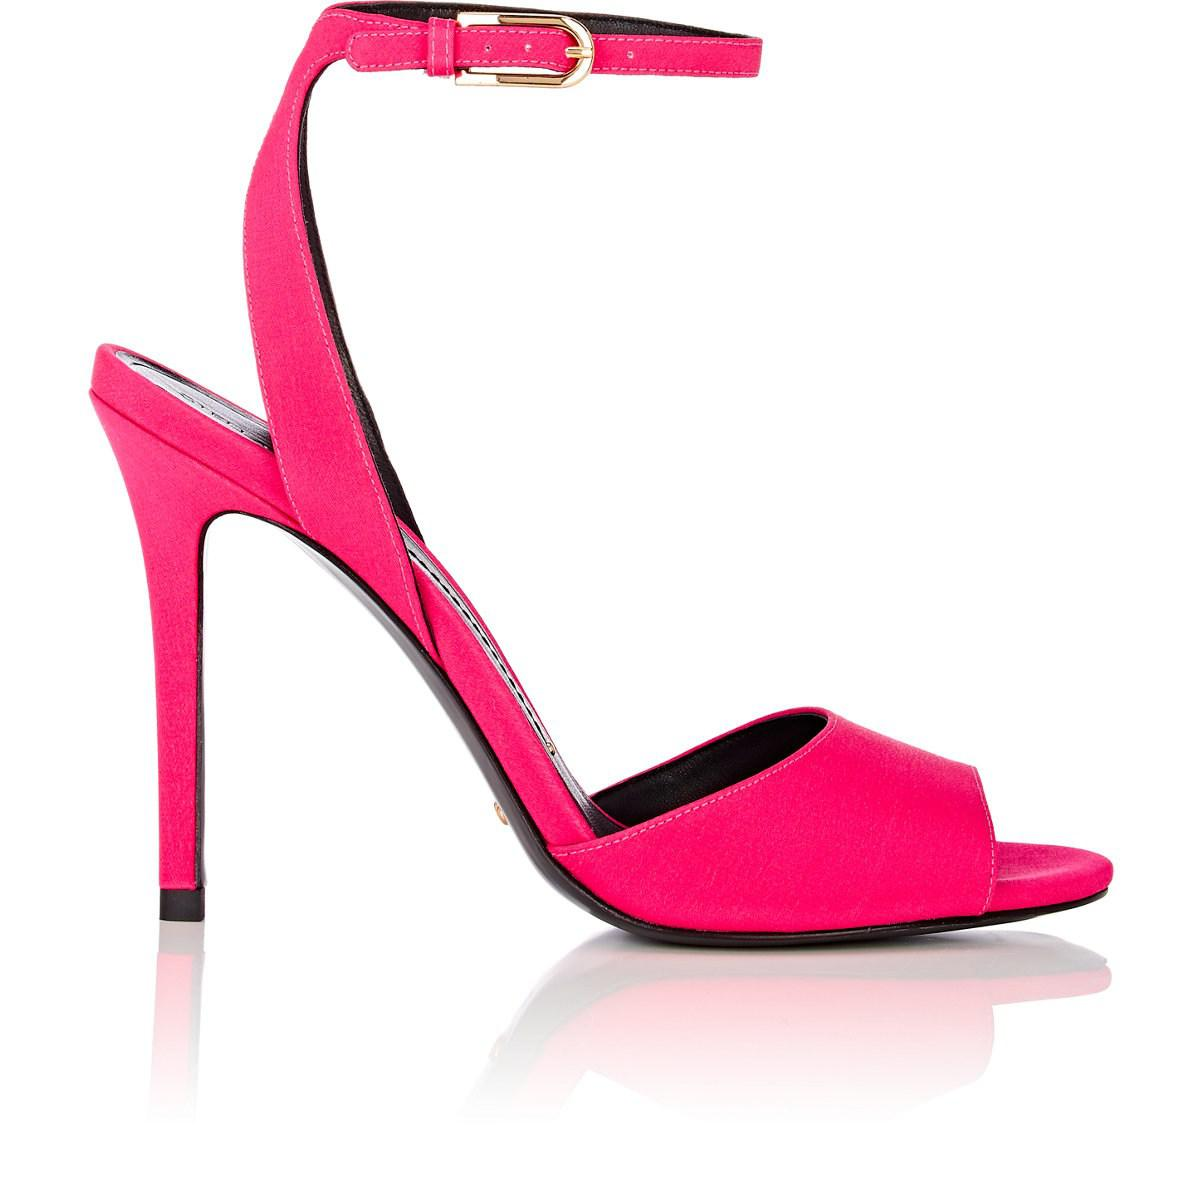 5c2eccb9db1a Lyst - Stella Luna Tech-satin Ankle-strap Sandals in Pink